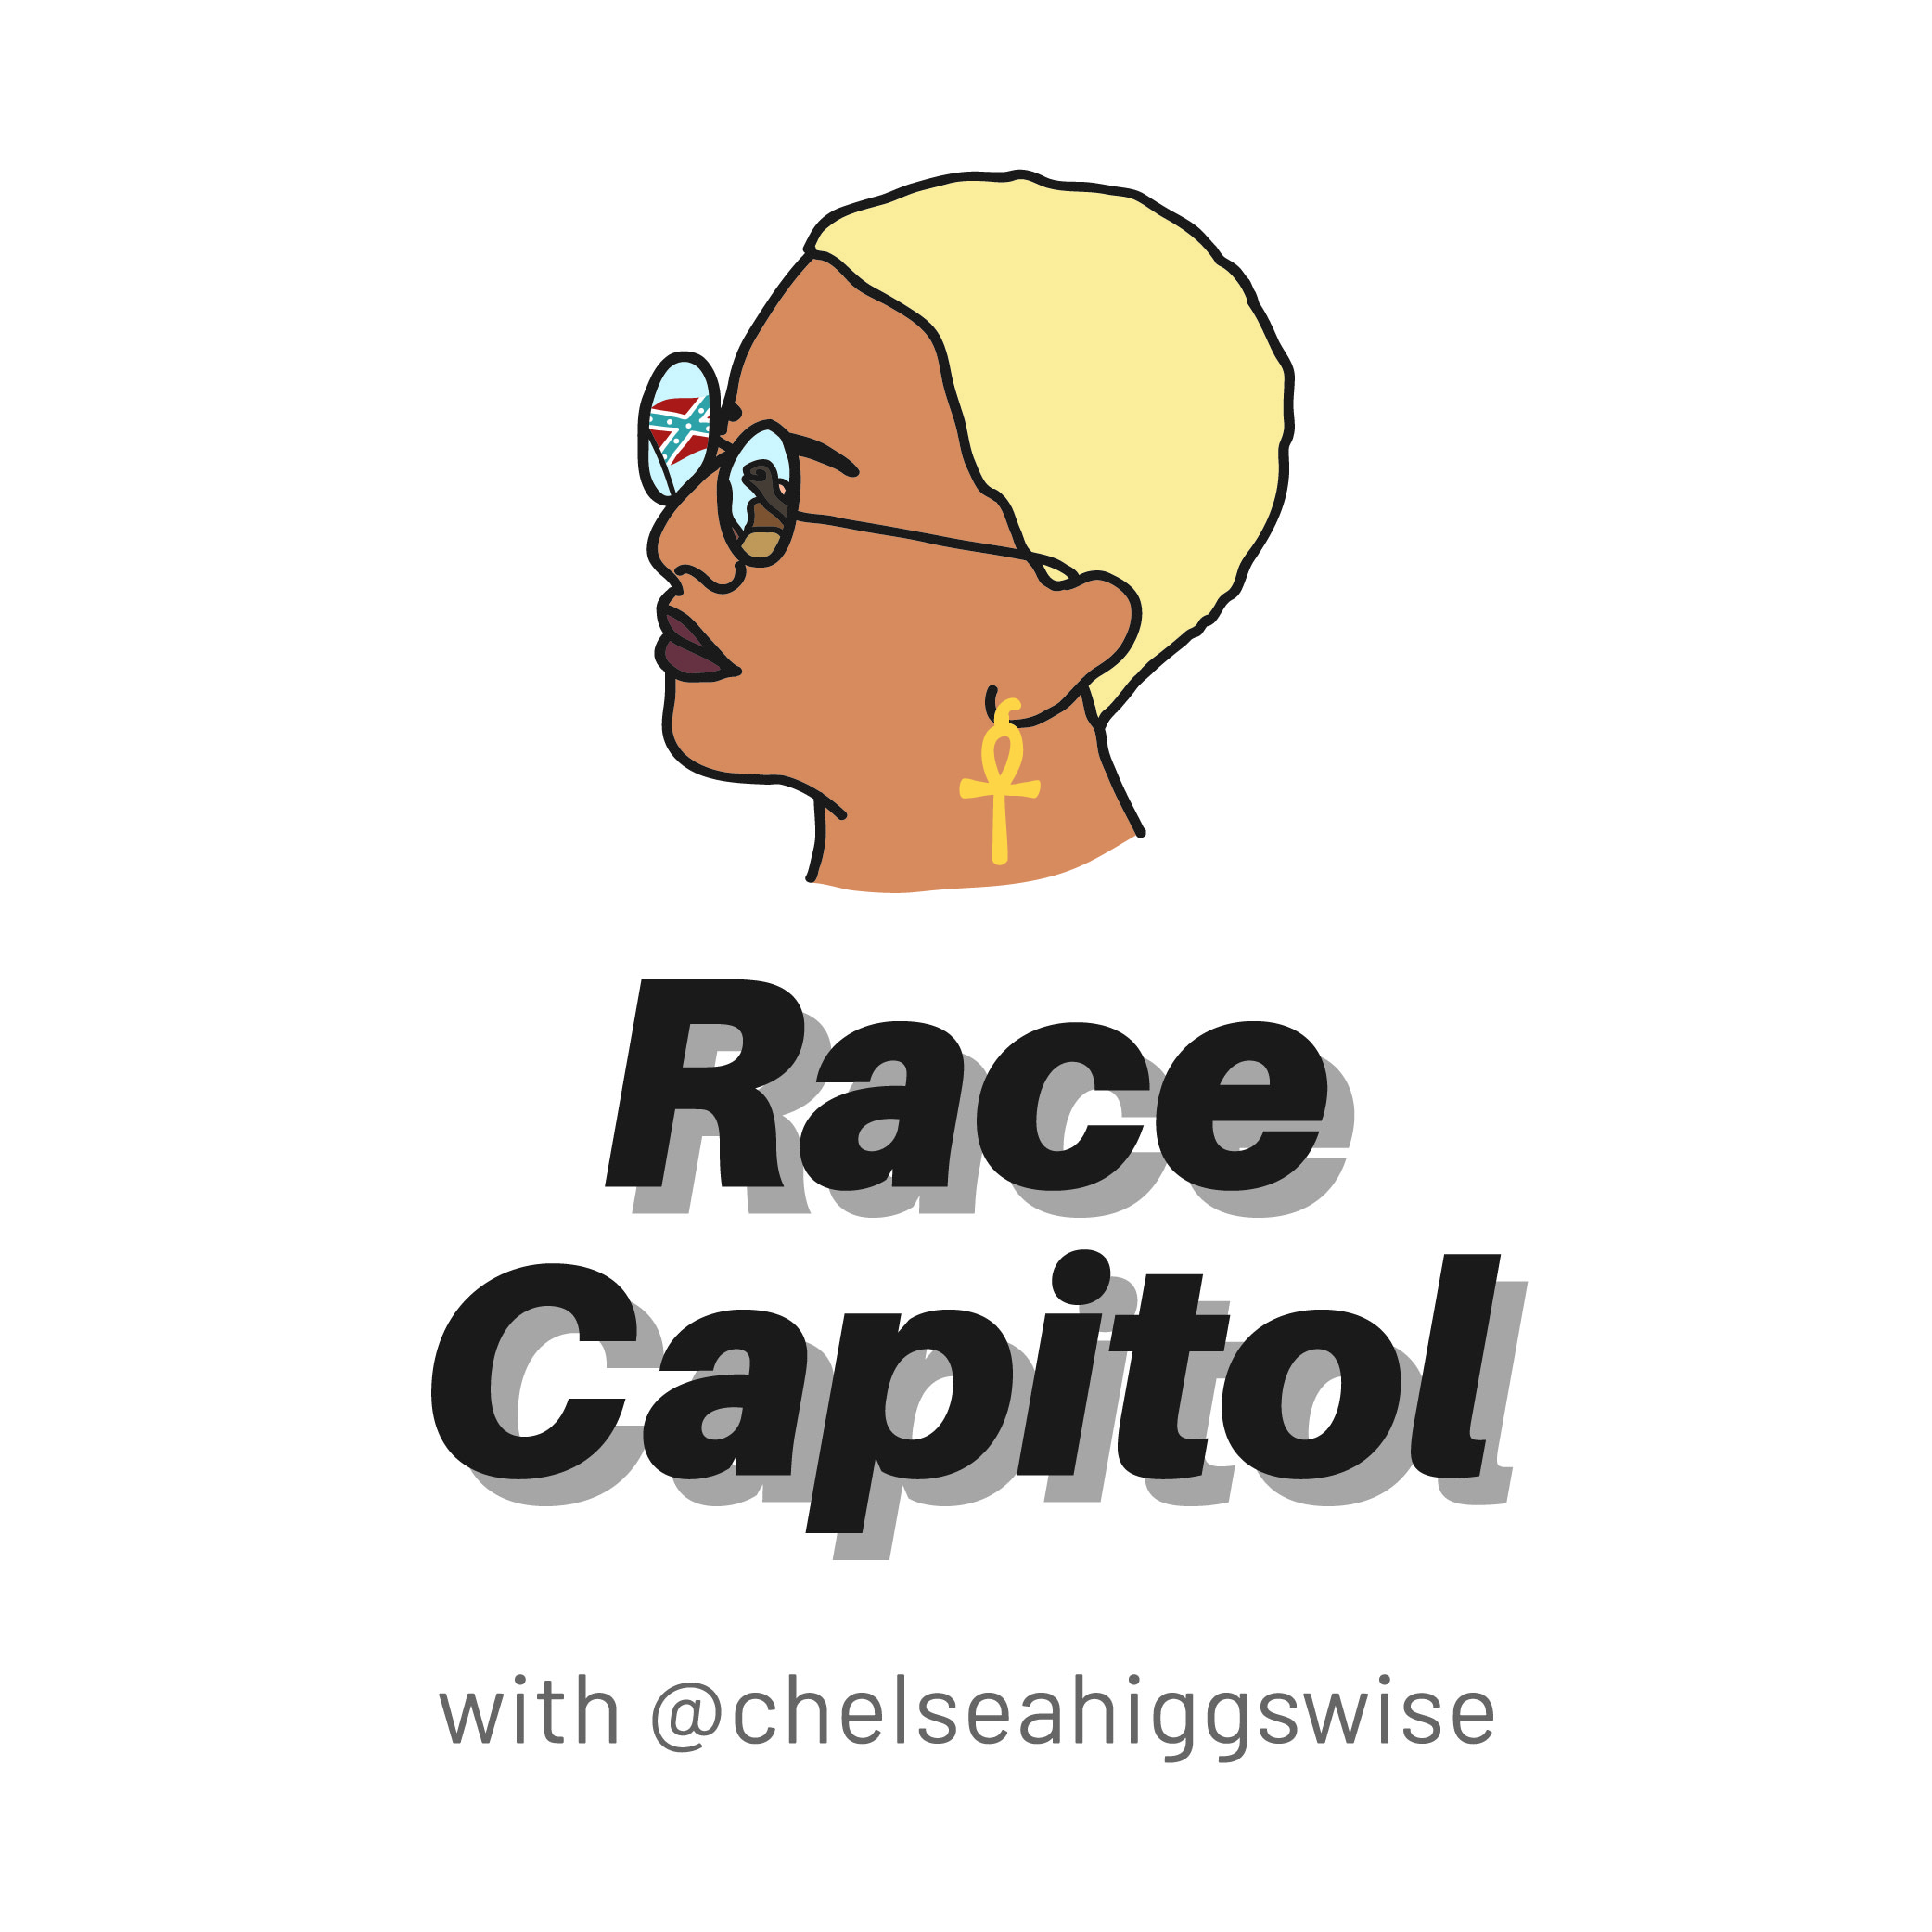 Race Capitol Final Logo_Chelsea_With Tag.jpg